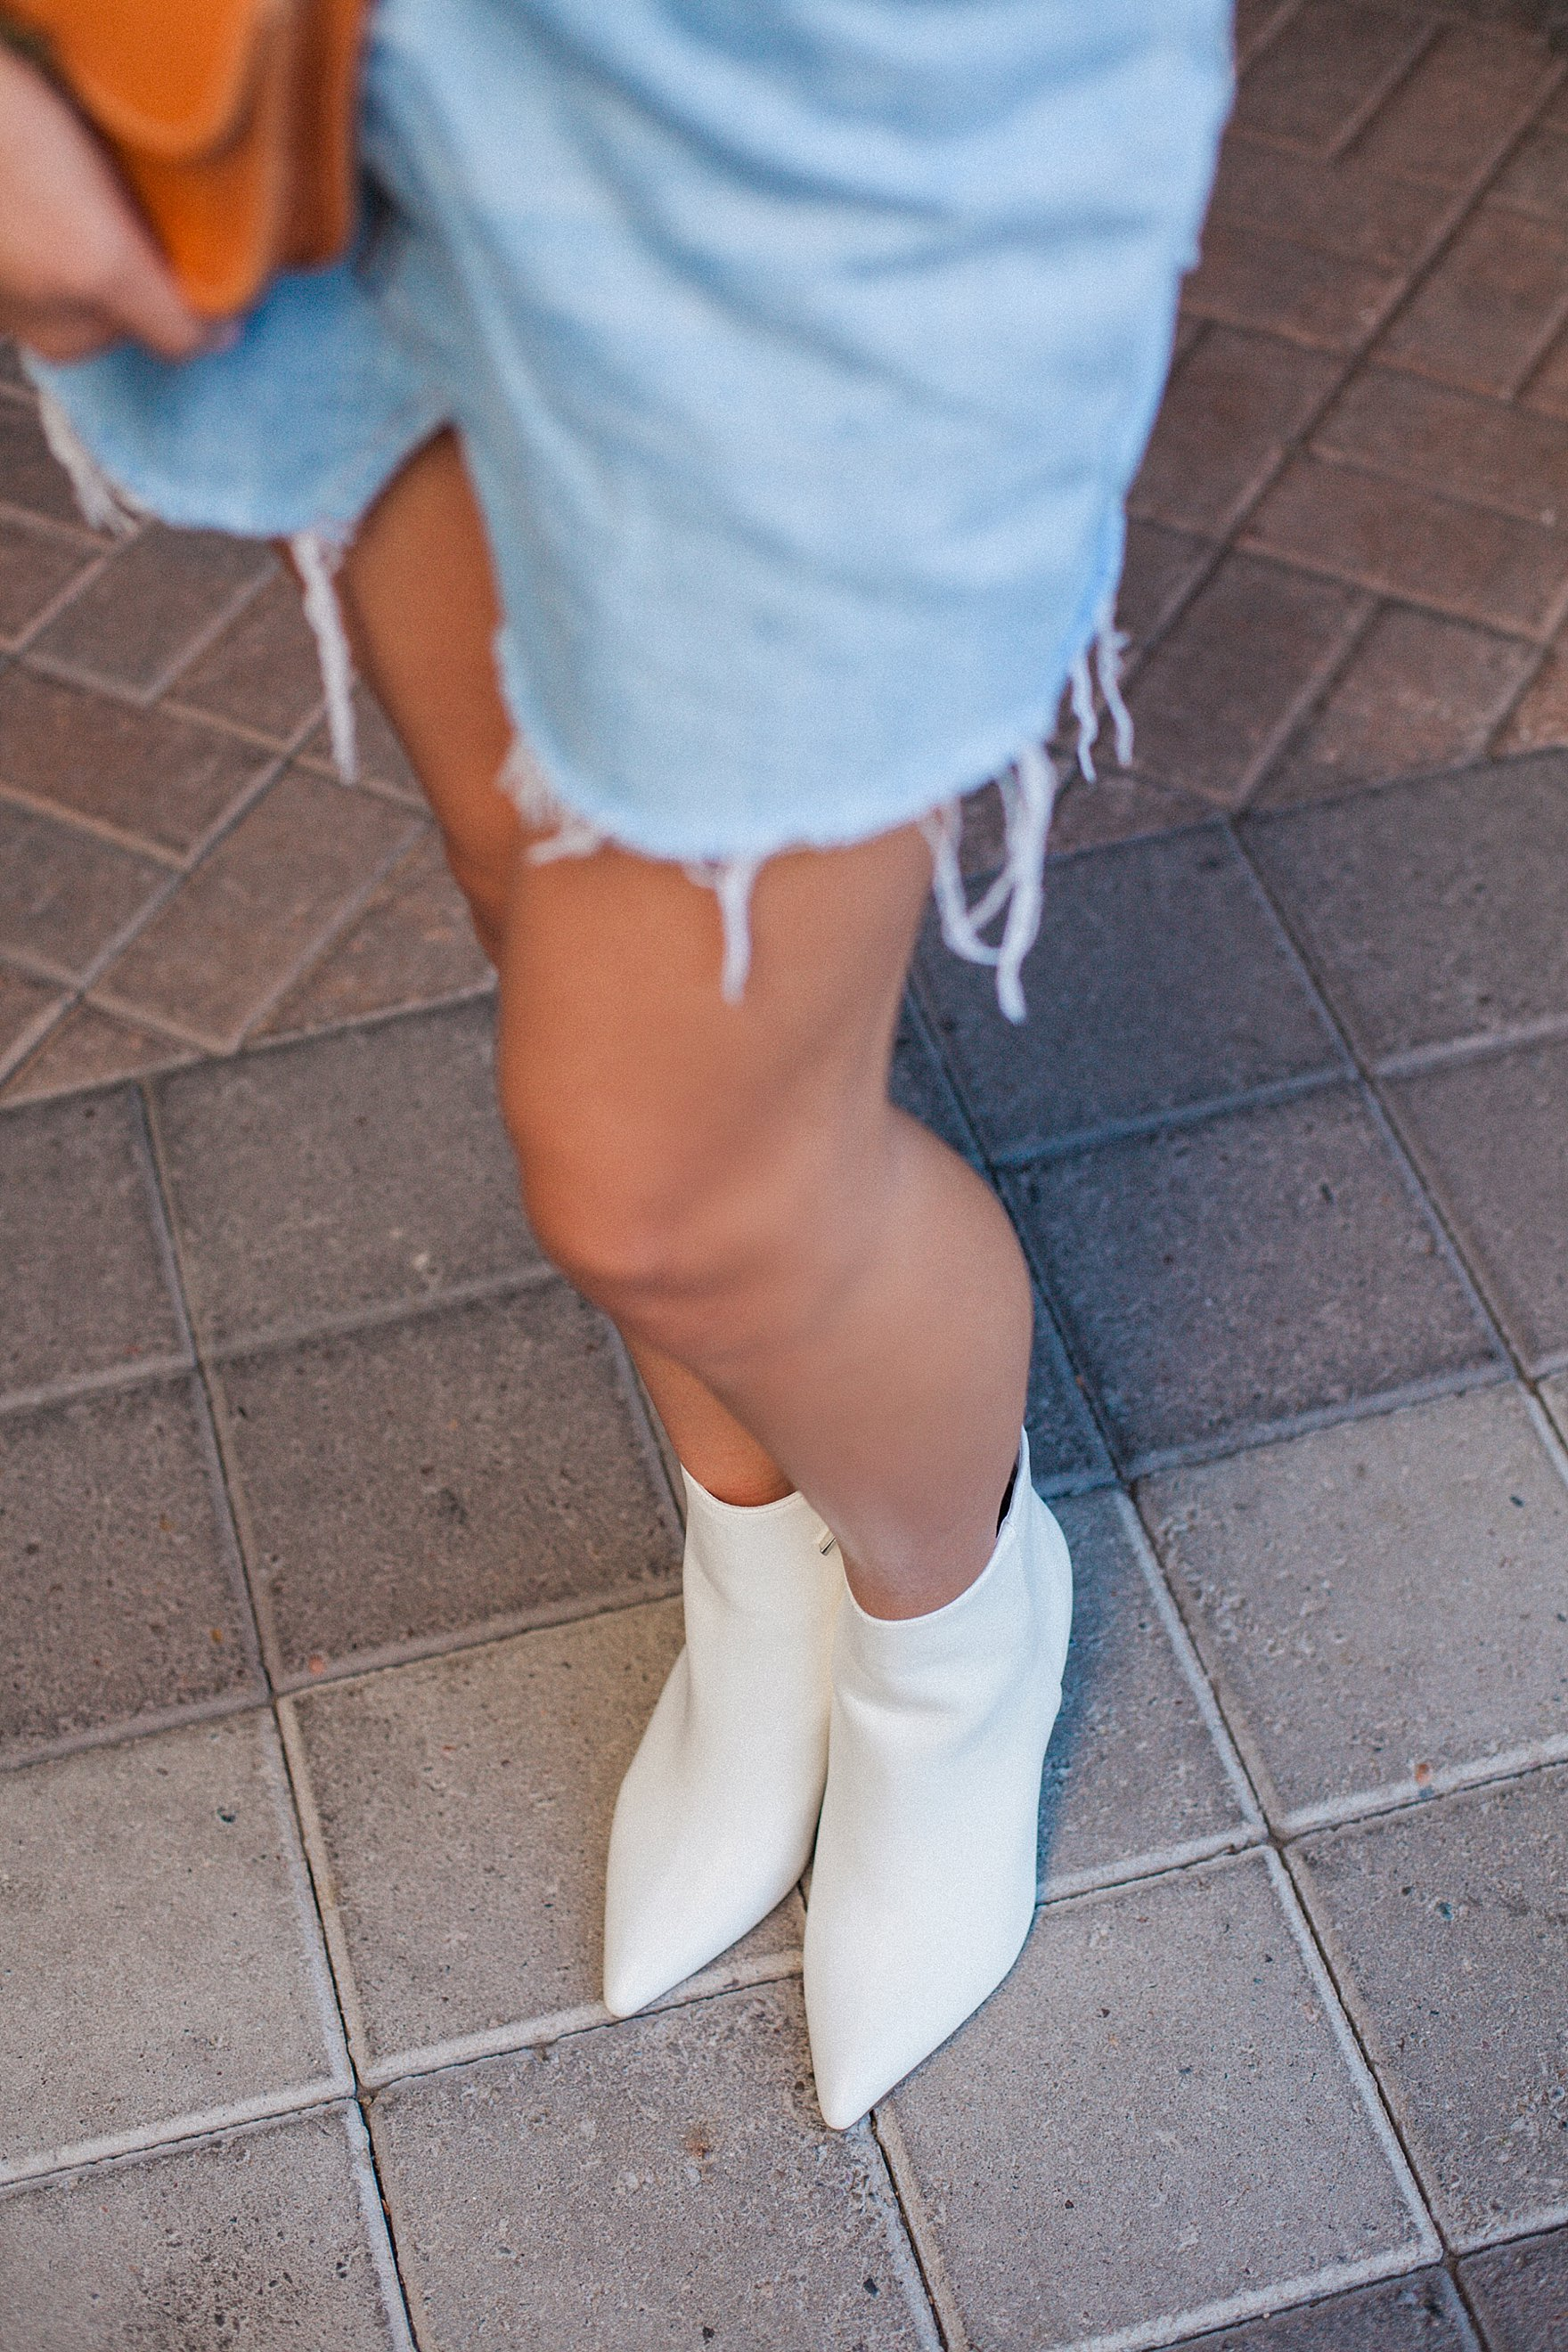 embroidery shirt from urban outfitters with denim skirt with white ankle booties